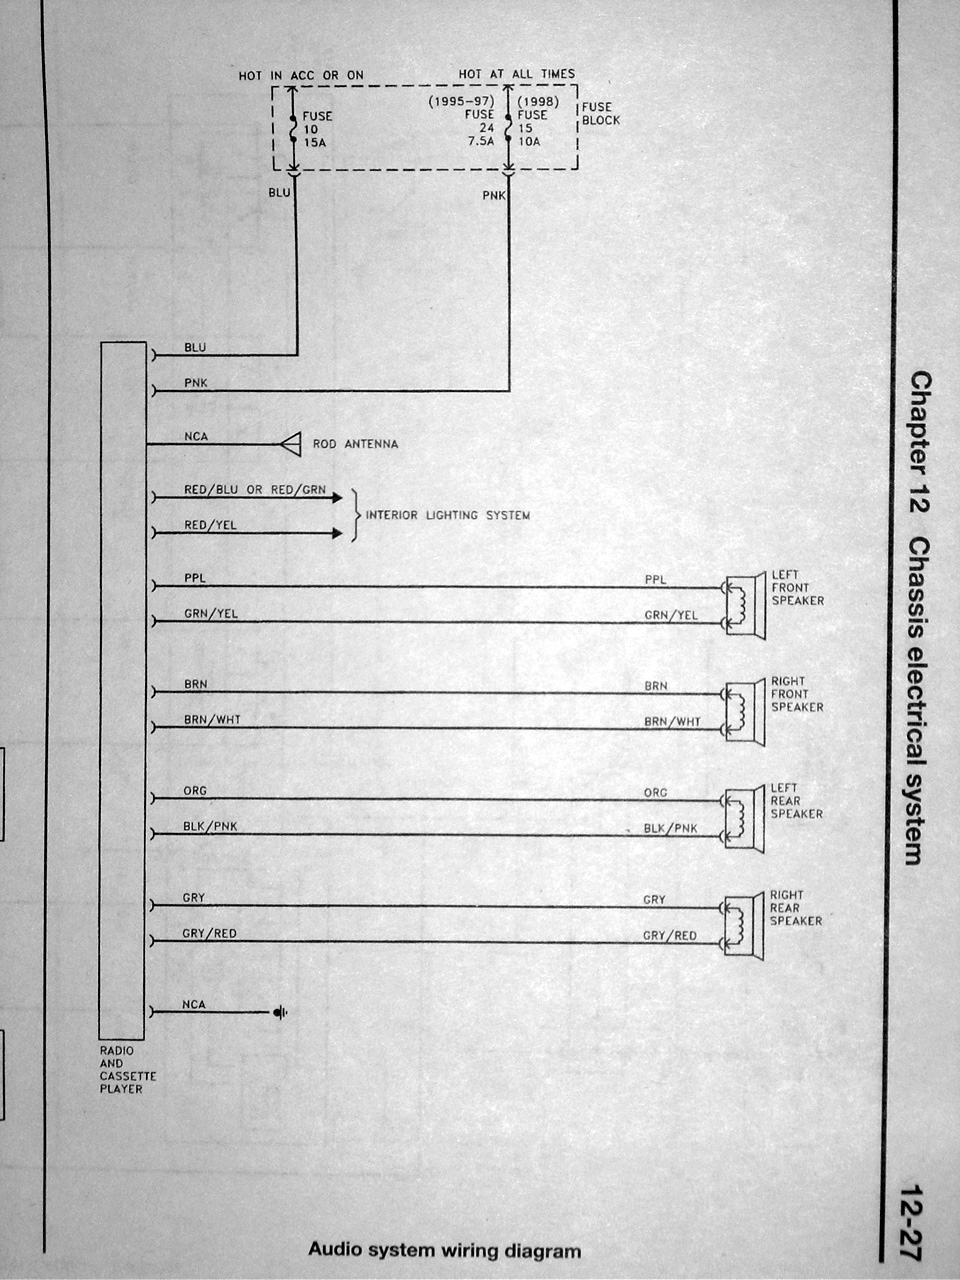 DSC01849 wiring diagram thread *useful info* nissan forum 06 nissan sentra radio wiring diagram at nearapp.co